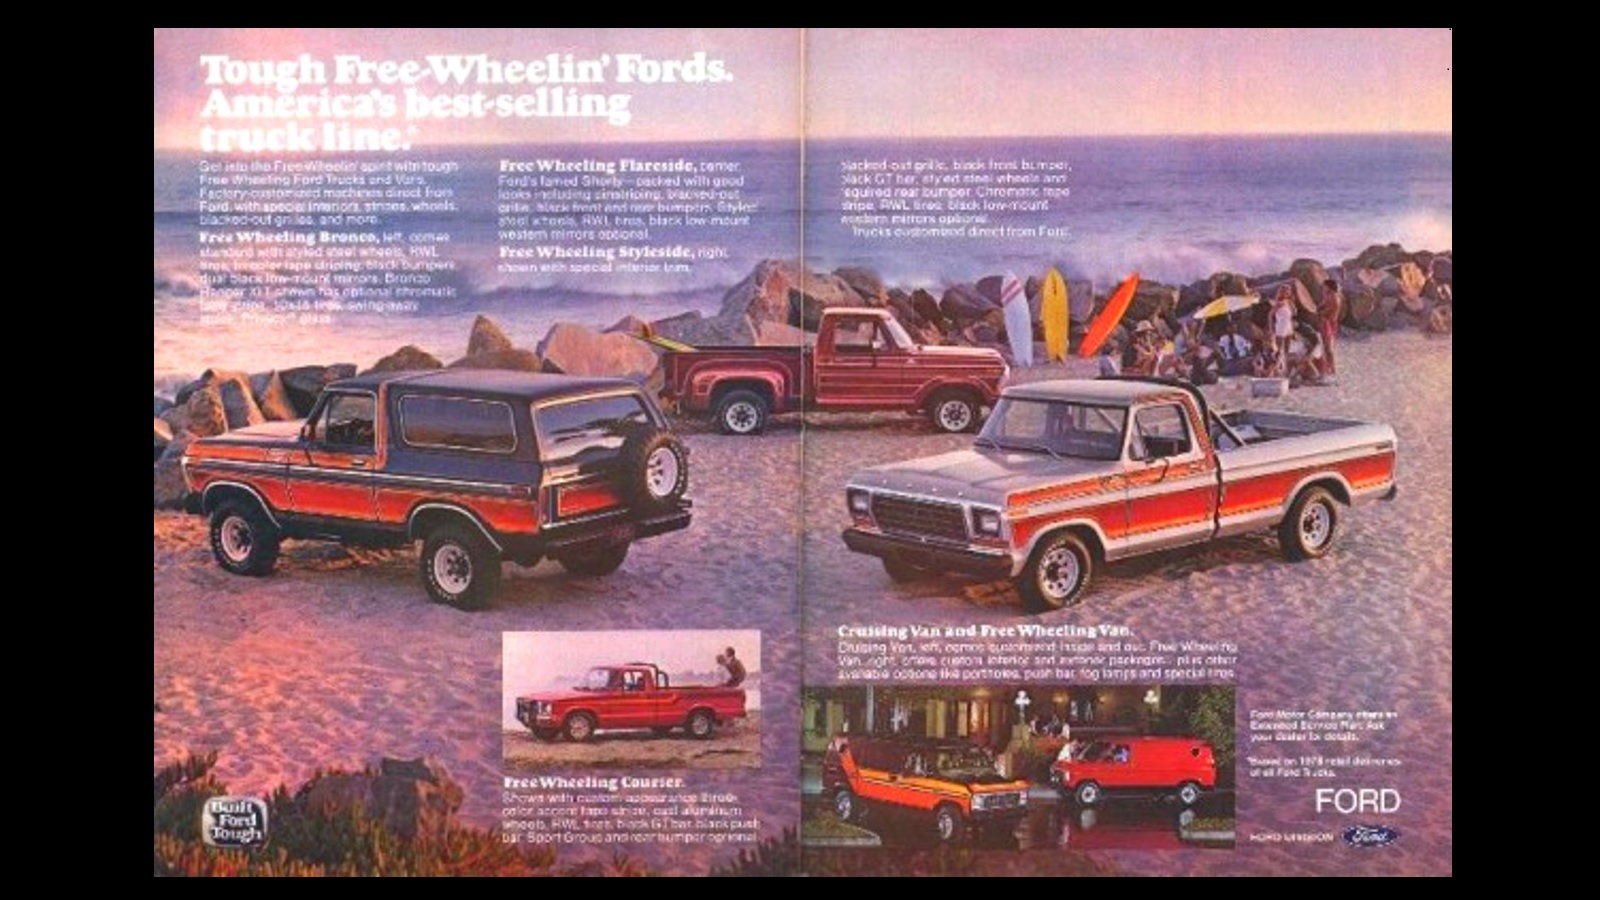 9. 1978 Ford F-150 Free Wheeling Edition